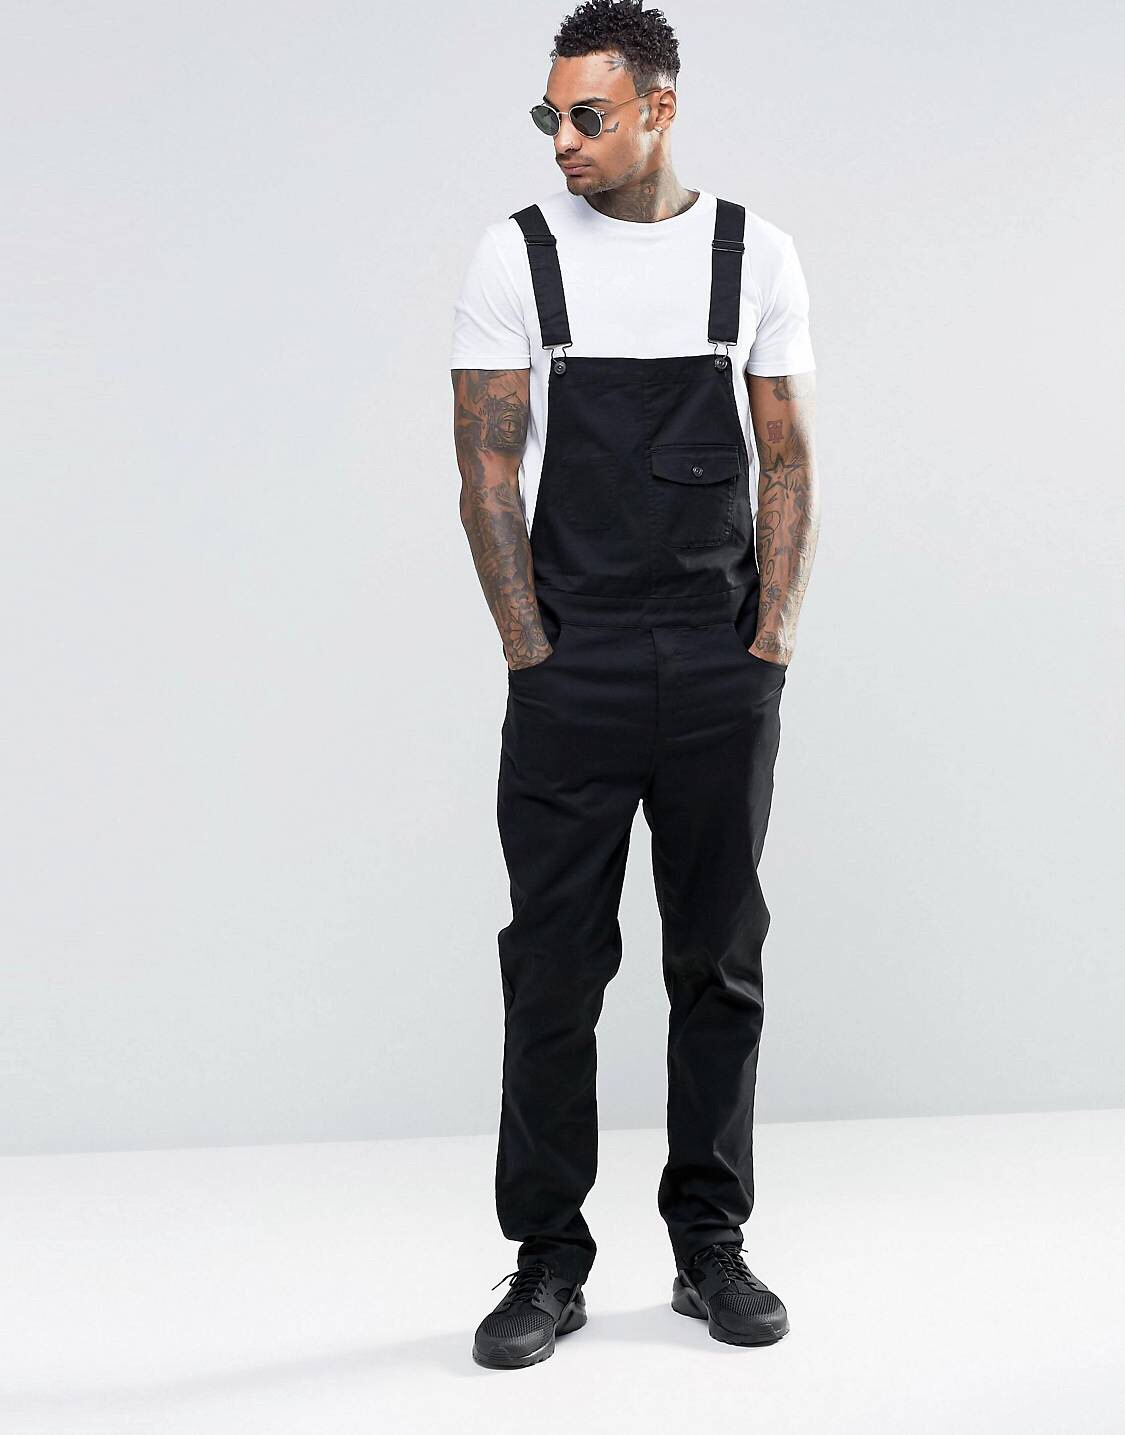 £40 ASOS Dungarees - Needed.